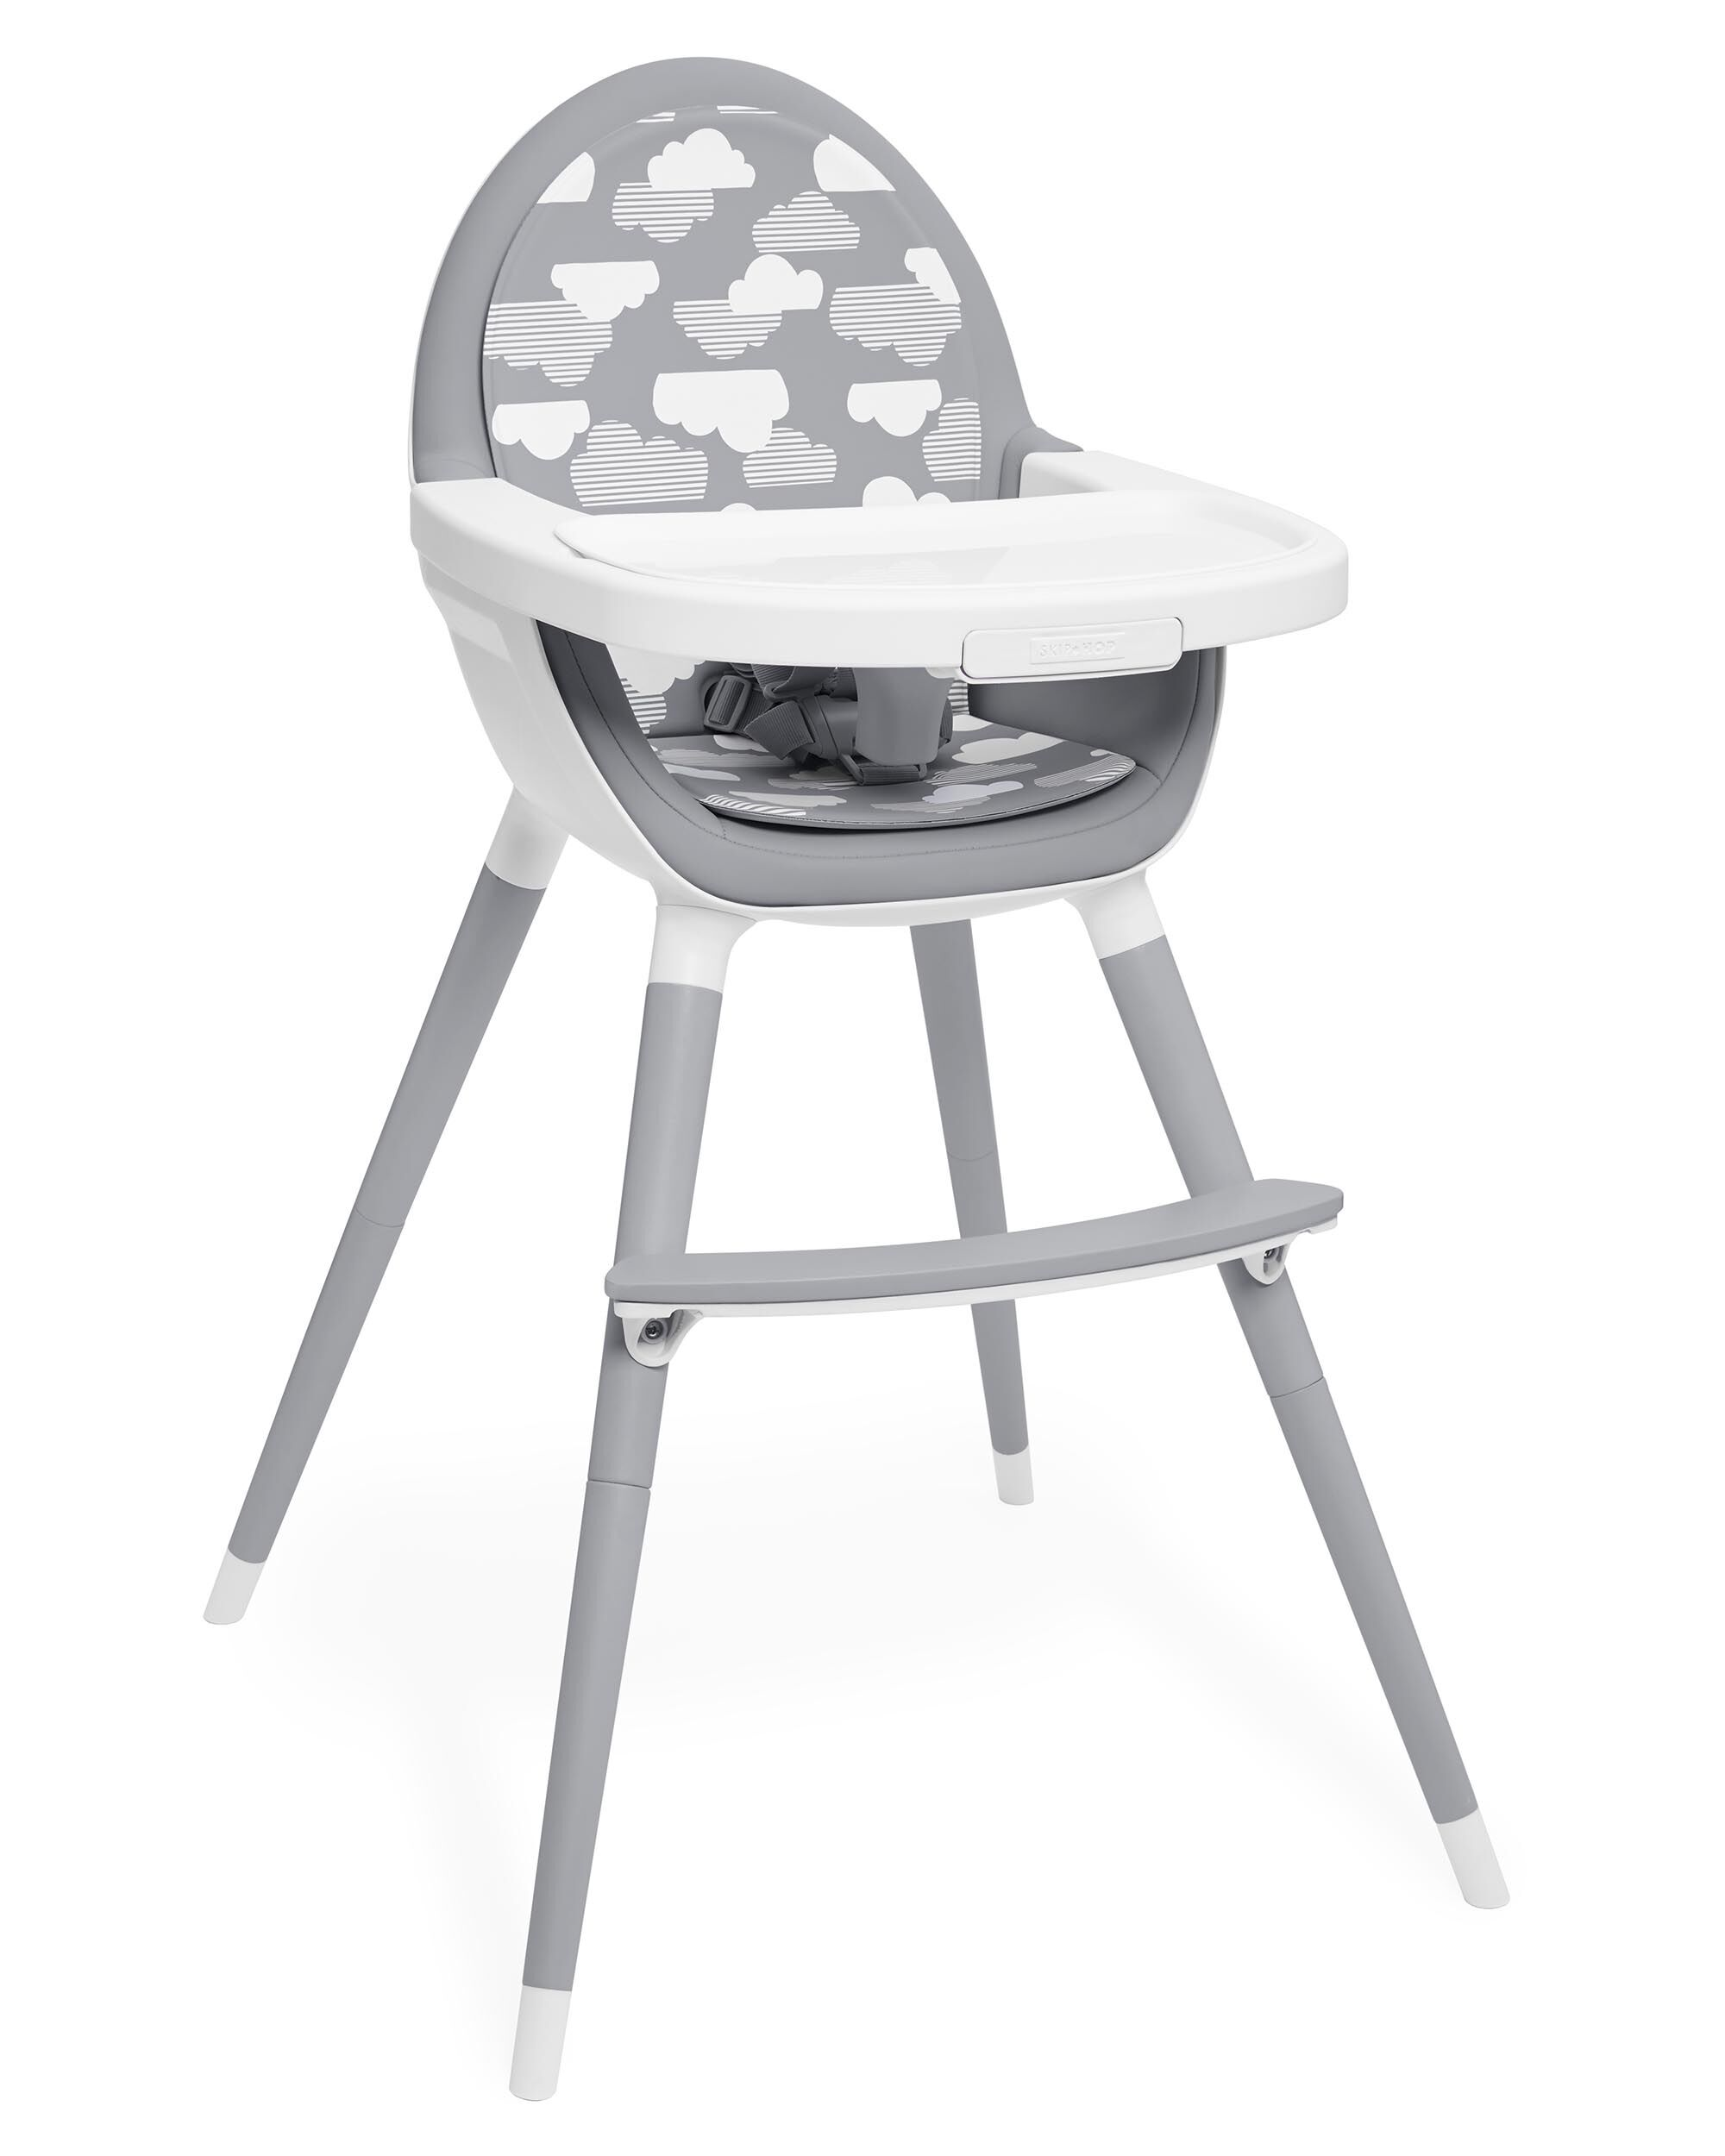 Charmant ... Tuo Convertible High Chair ...